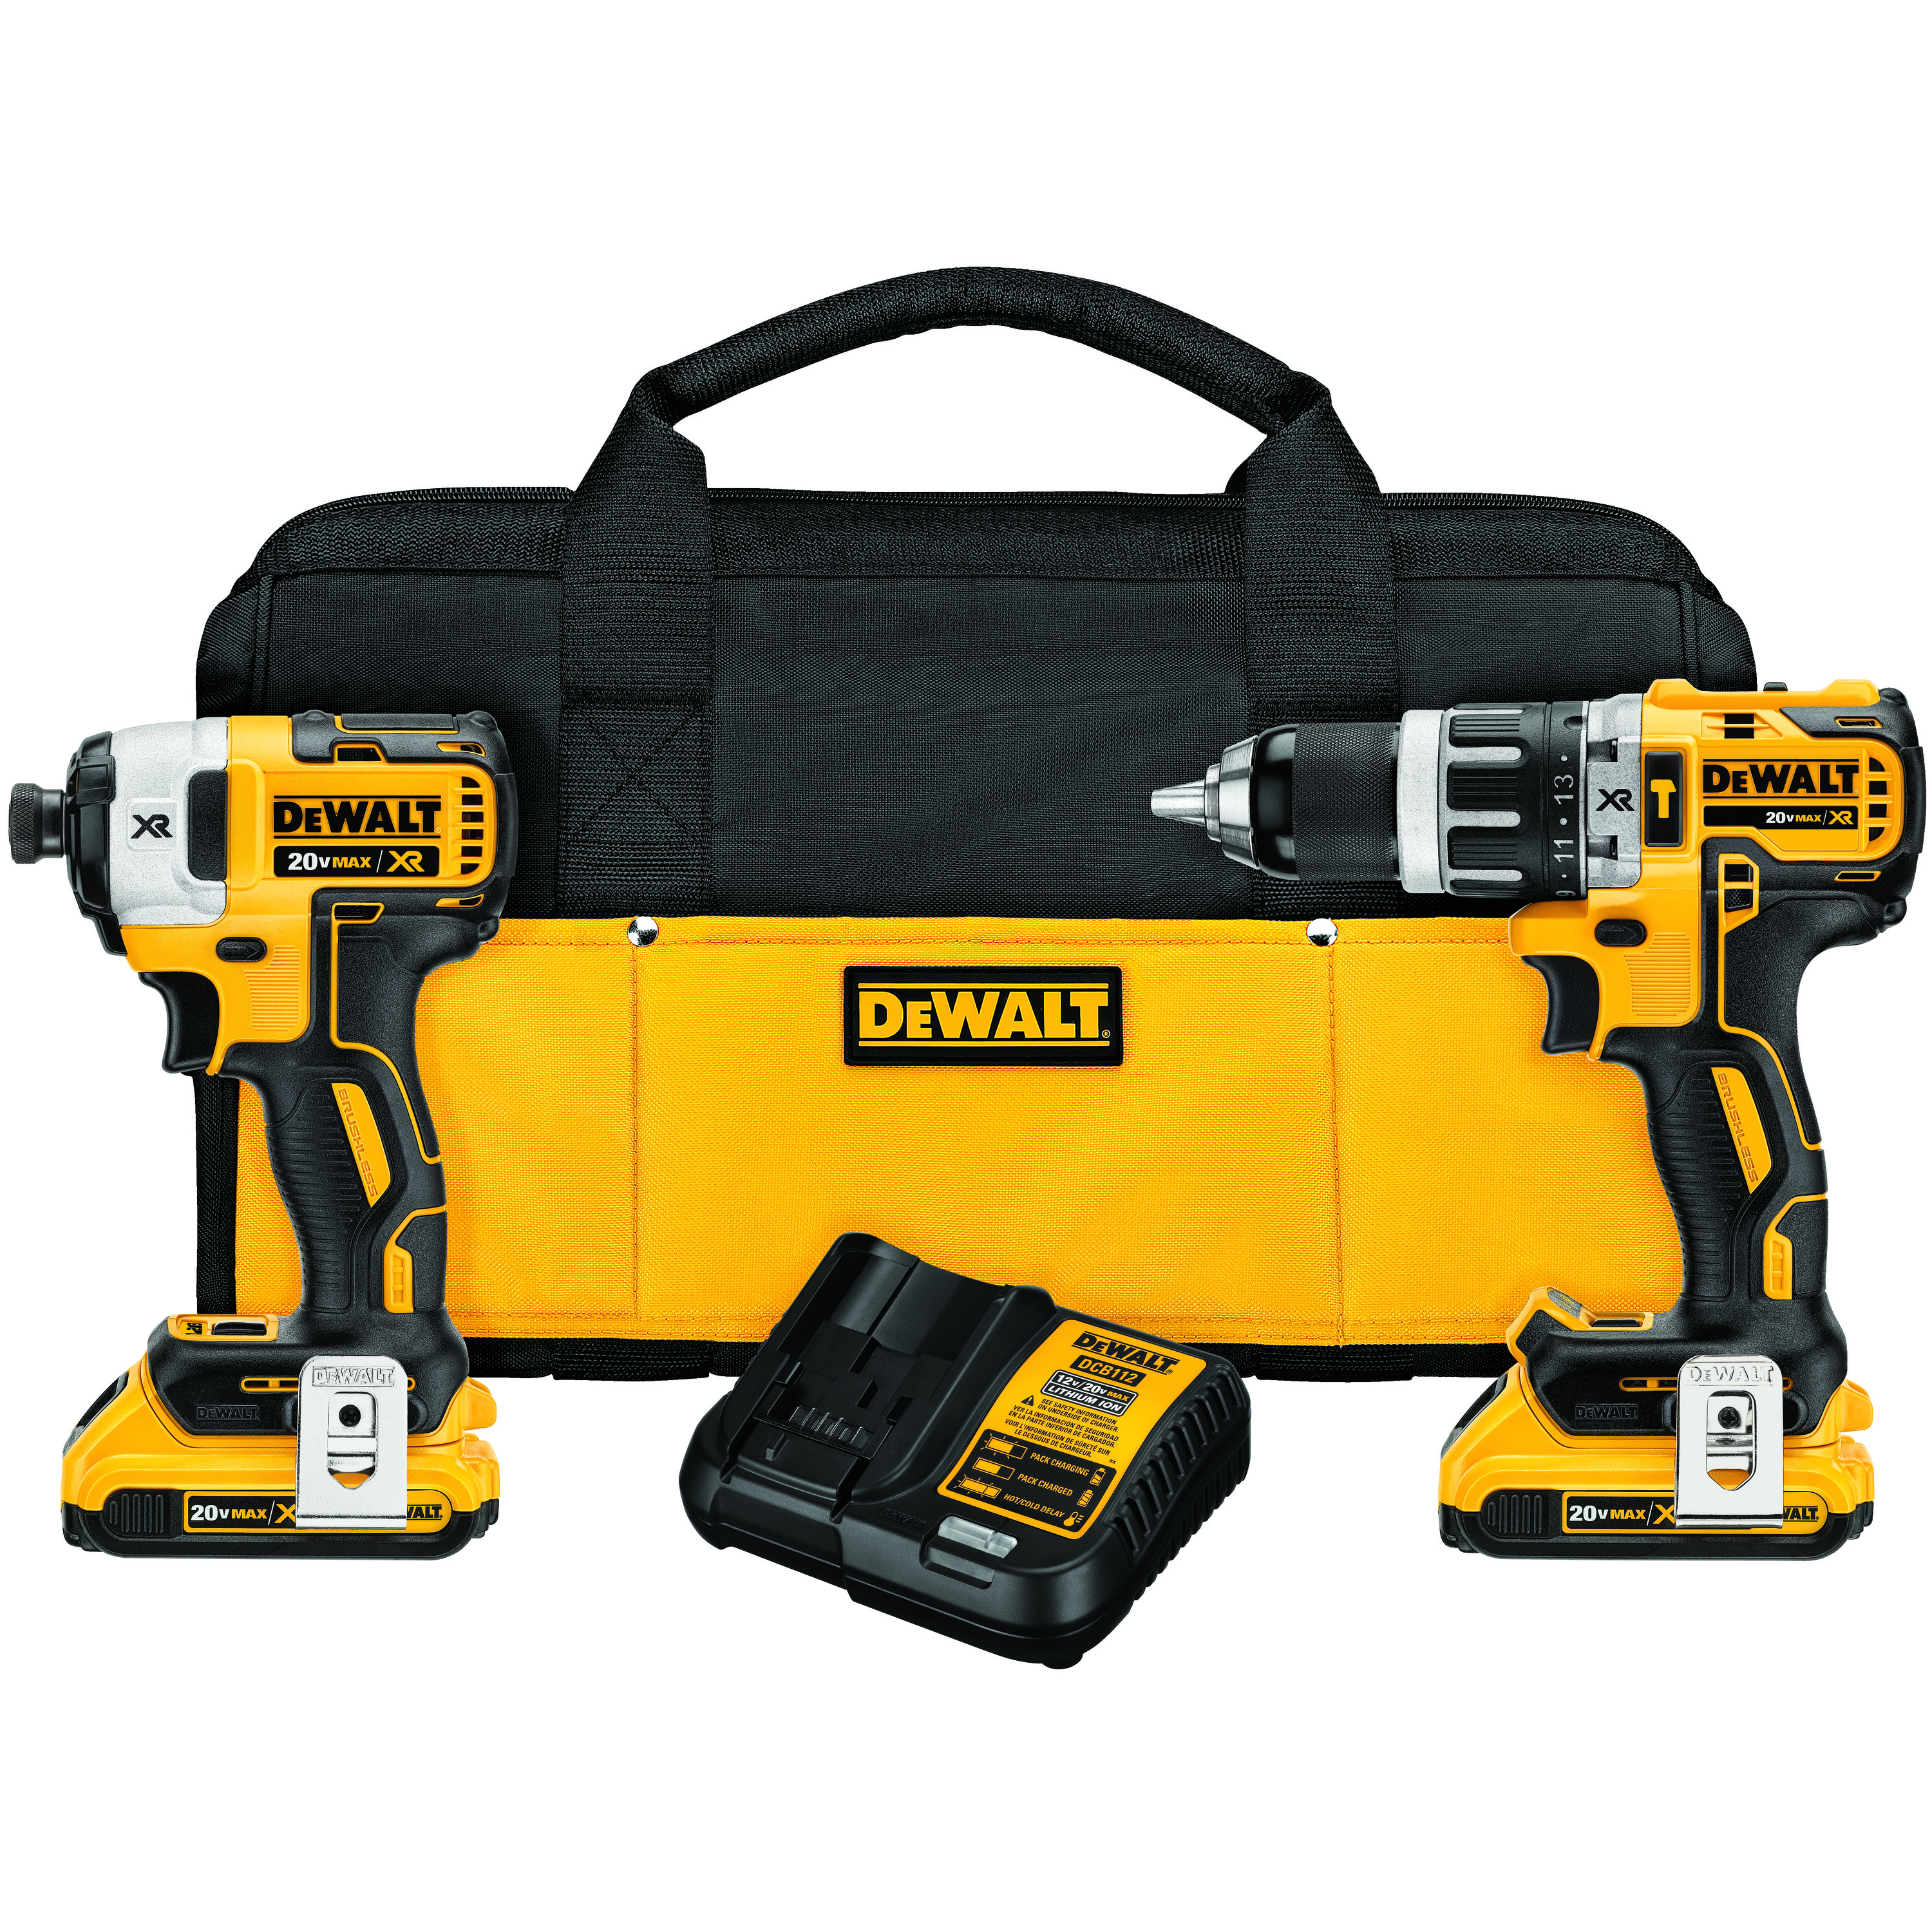 DeWALT® 20V MAX* MATRIX™ XR™ DCK287D2 2-Tool Compact Cordless Combination Kit, Tools: Hammer Drill/Driver, Impact Driver, 20 V, 2 Ah Lithium-Ion